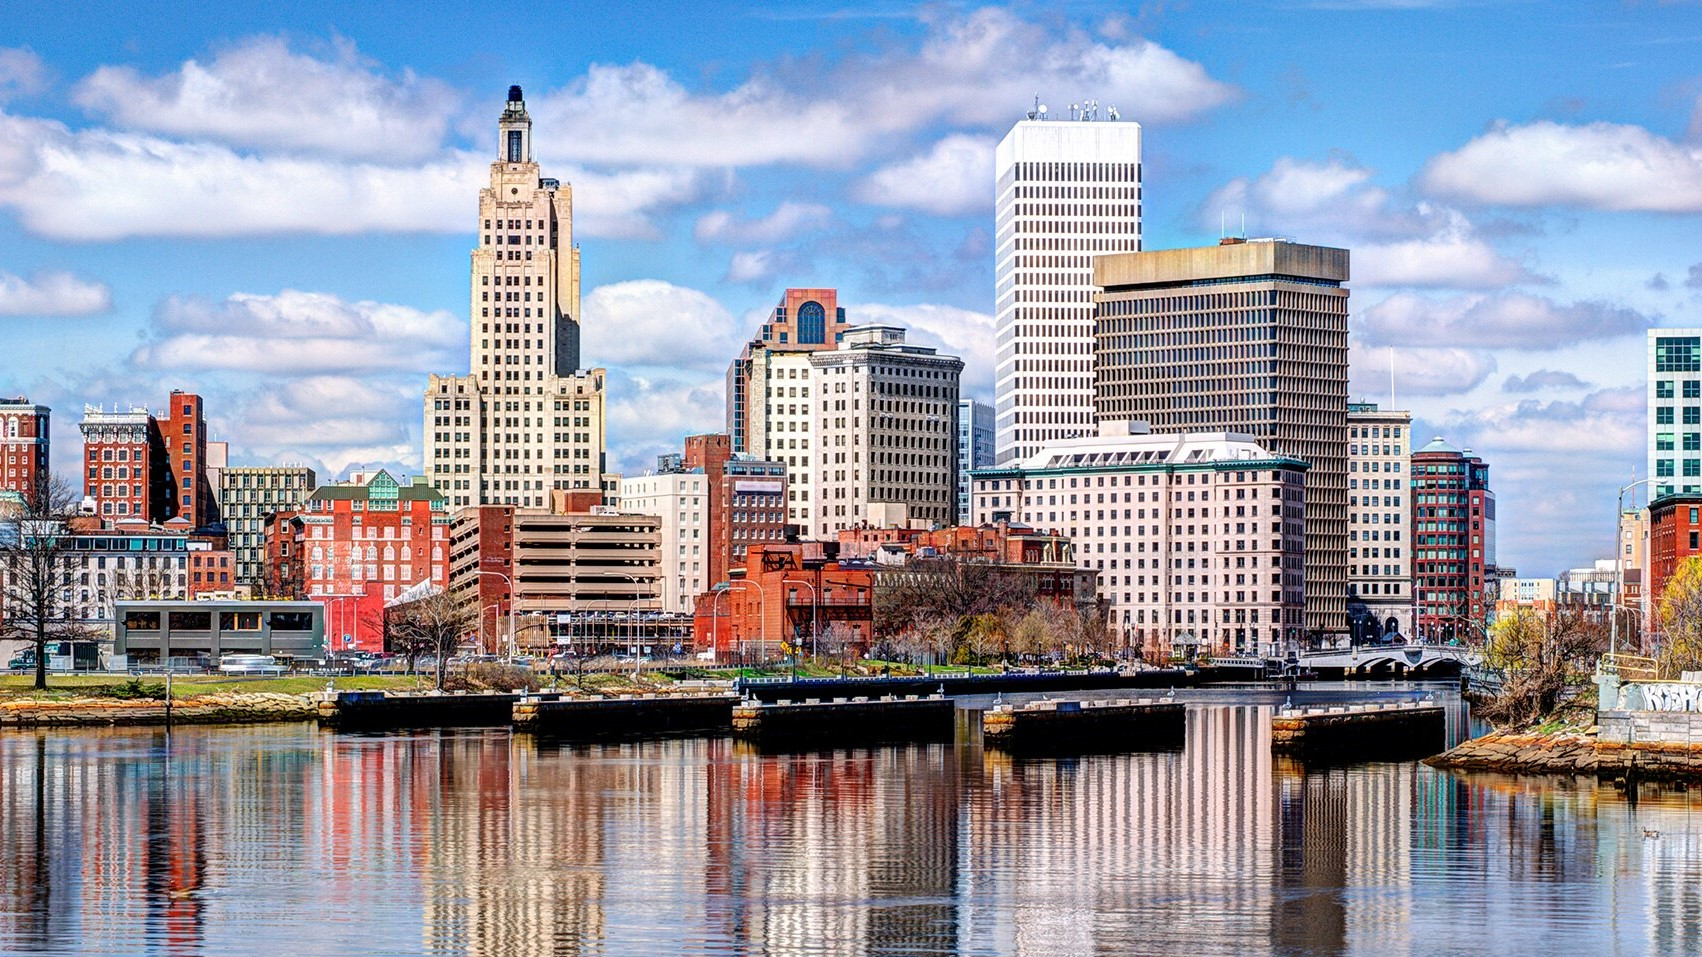 This is a skyline of downtown Rhode Island during the day.